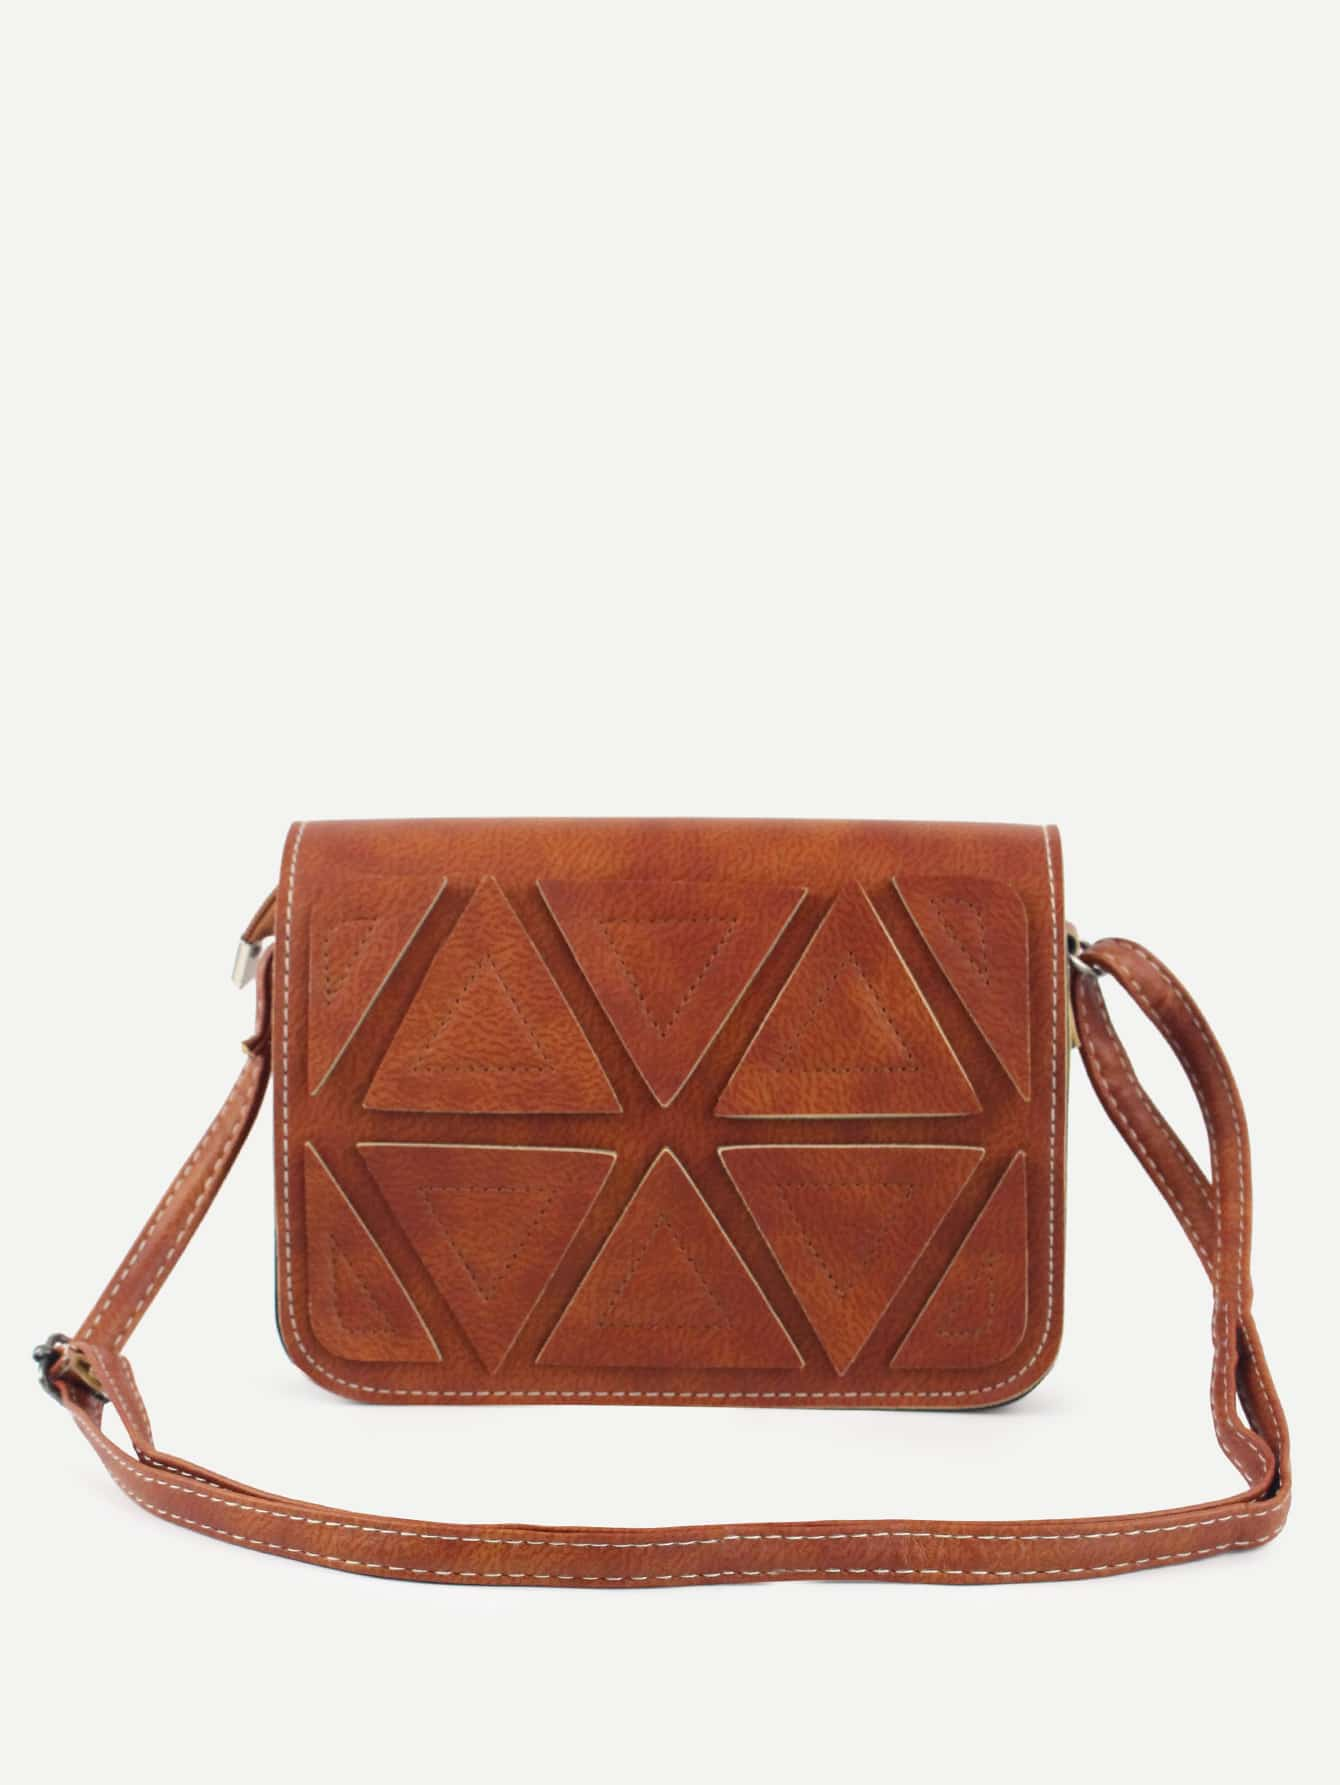 Camel Triangle Patch Flap BagCamel Triangle Patch Flap Bag<br><br>color: Camel<br>size: None